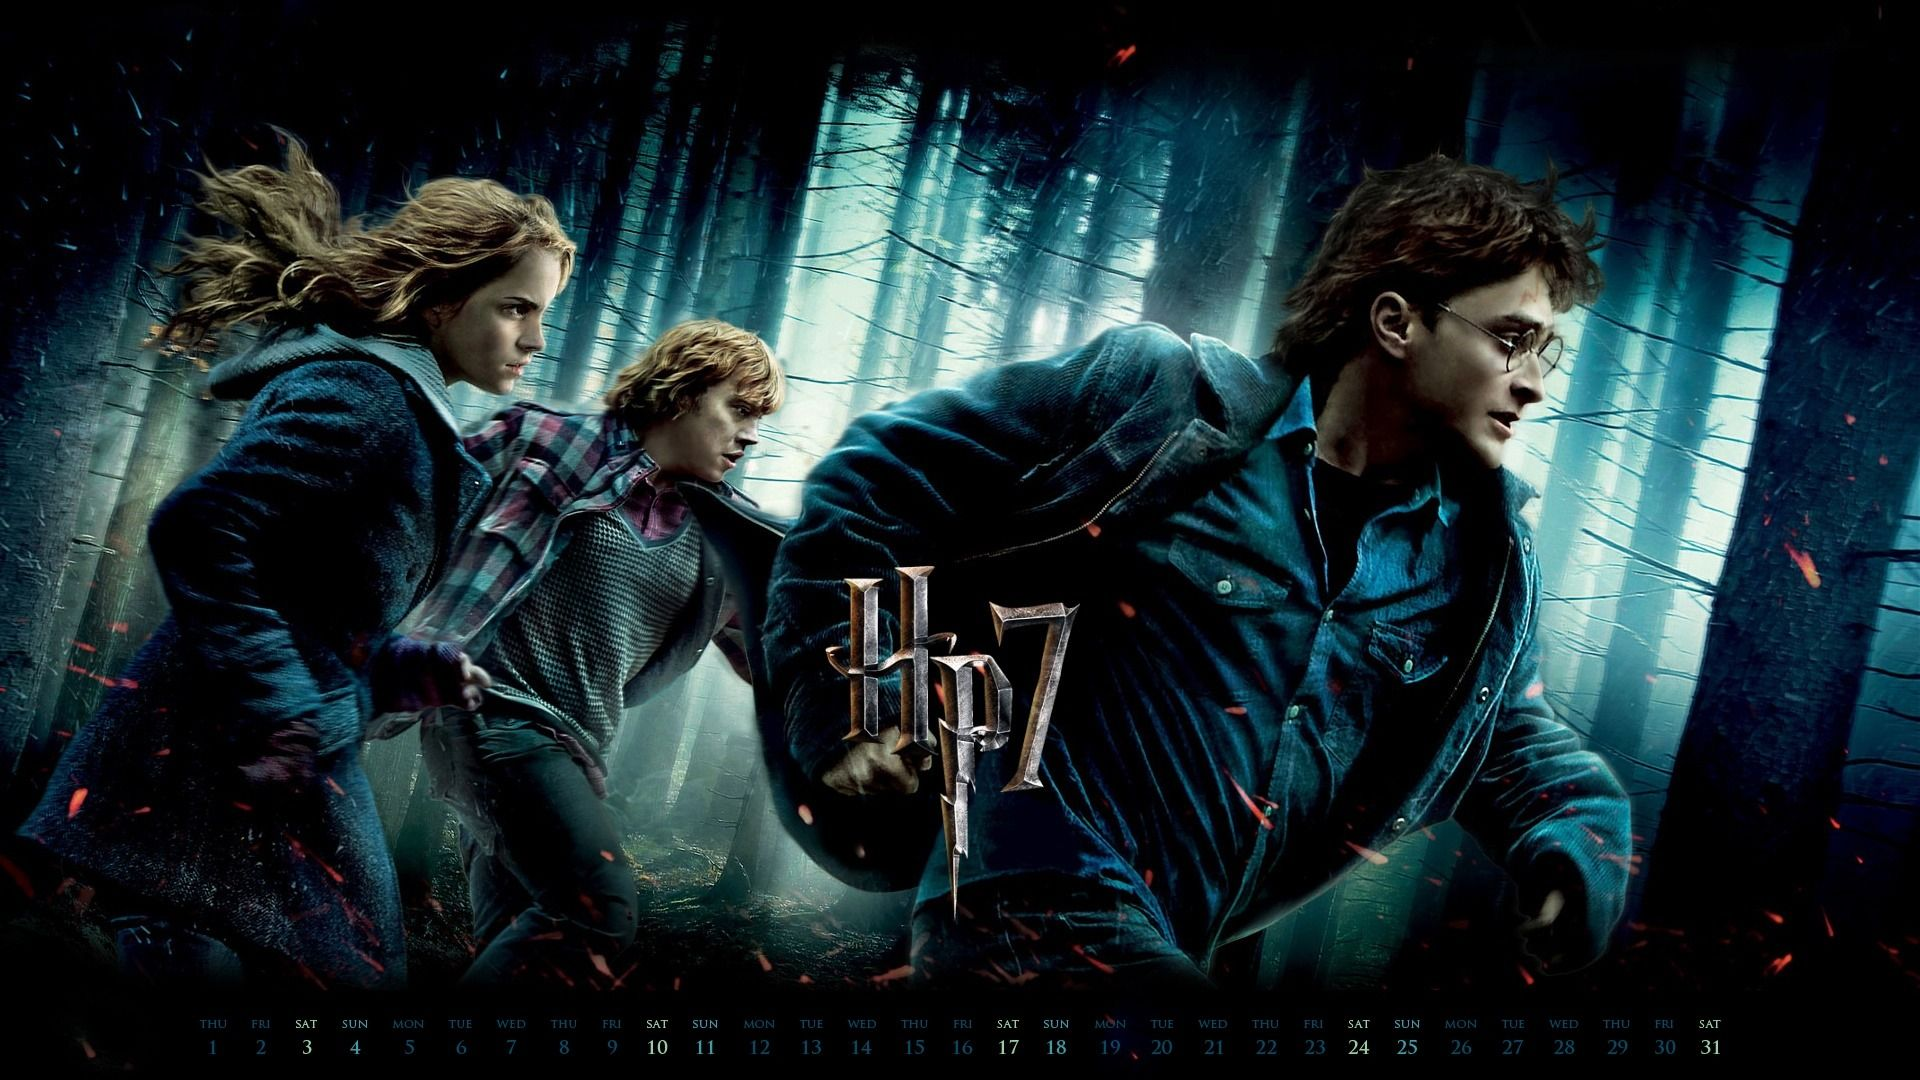 Hd Movie Wallpapers Harry Potter 7 Movie Wallpaper Hd 1080p For Desktop Deathly Hallows Part 1 Harry Potter Wallpaper Harry Potter Hermione